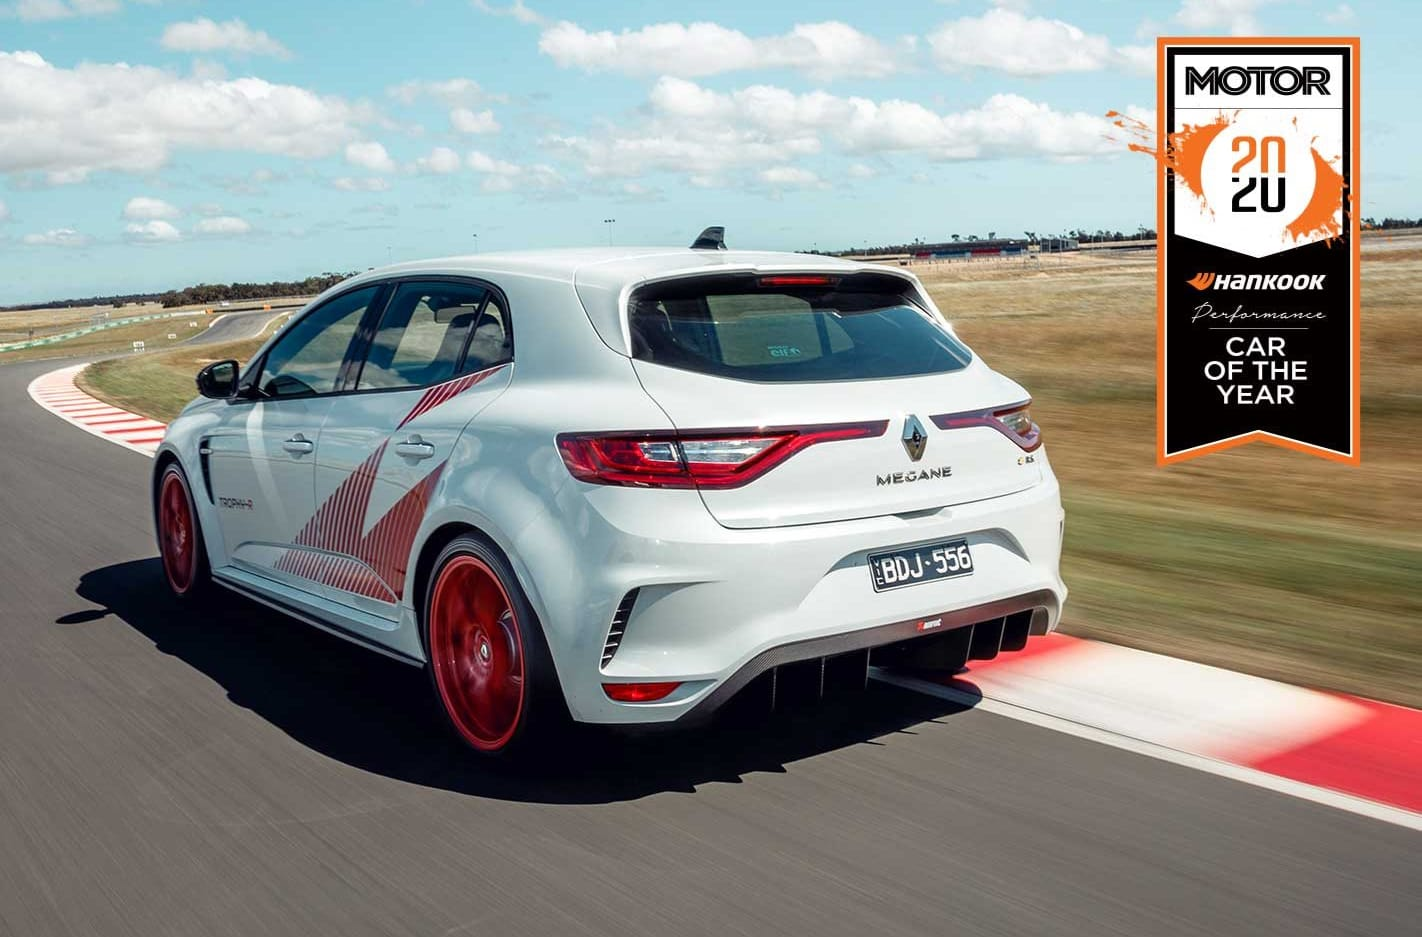 Renault Megane Trophy R Performance Car of the Year 2020 results